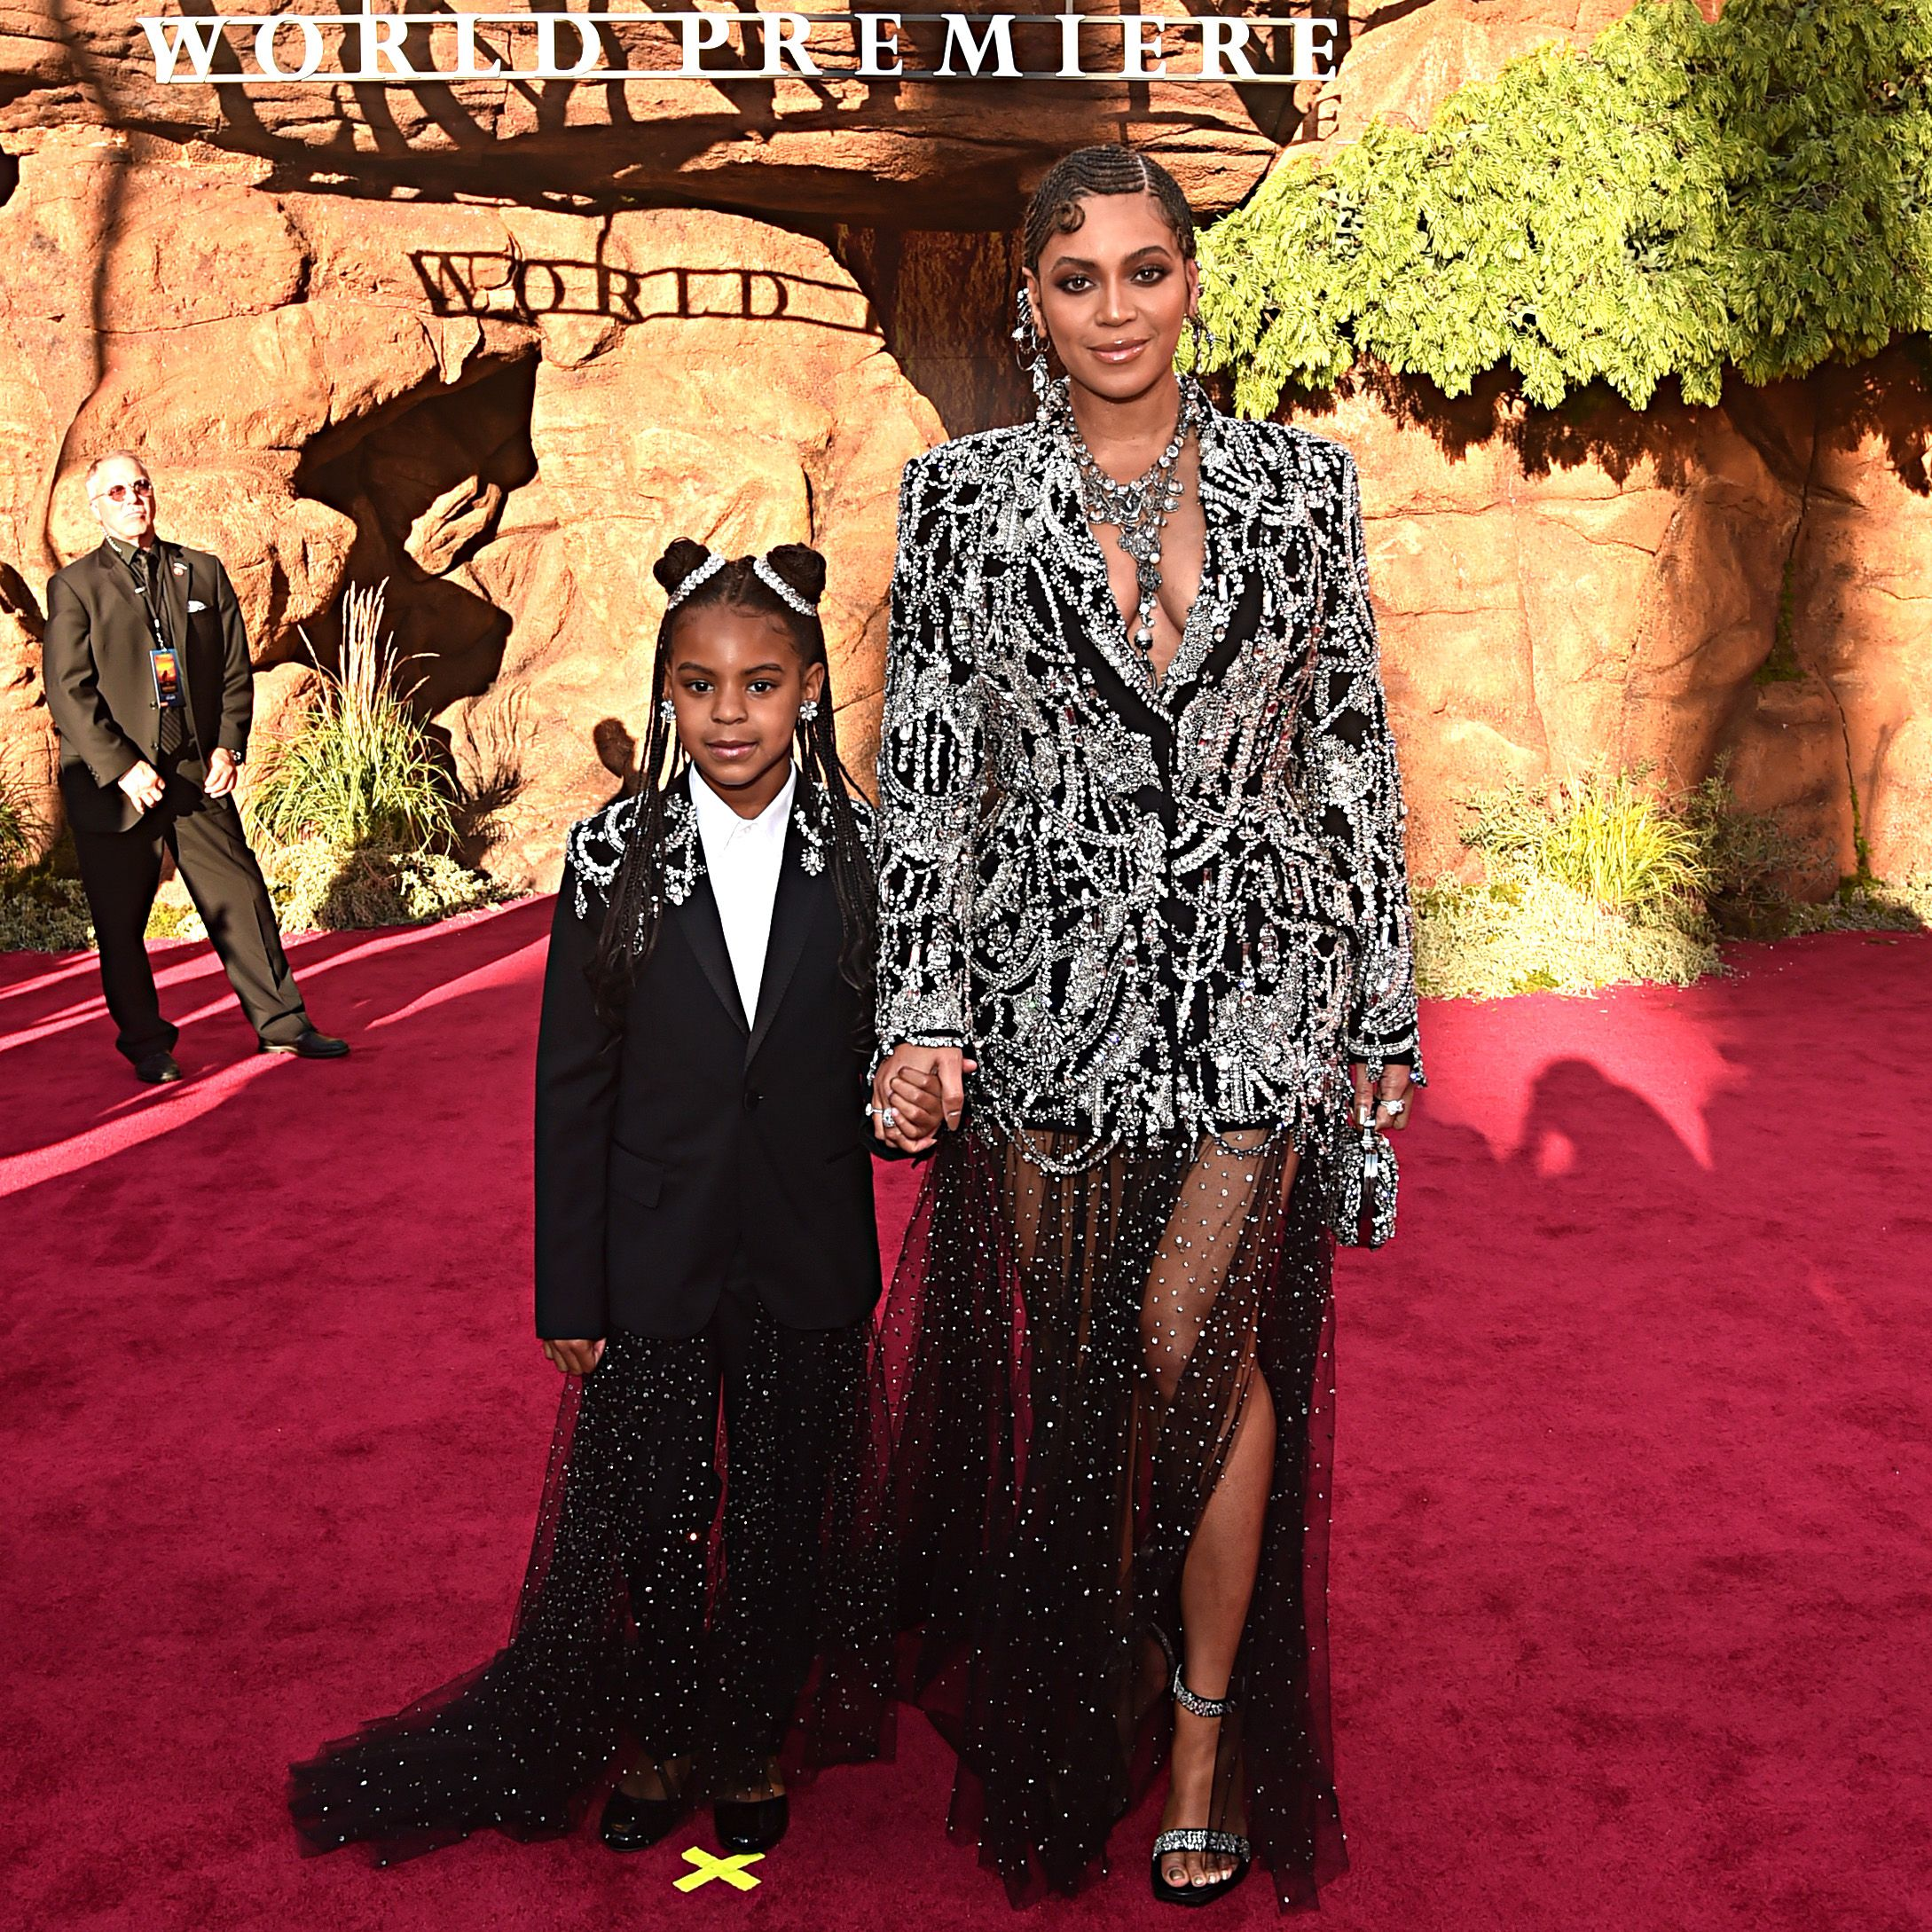 Blue Ivy Just Won Her First Songwriting Award at Age 7